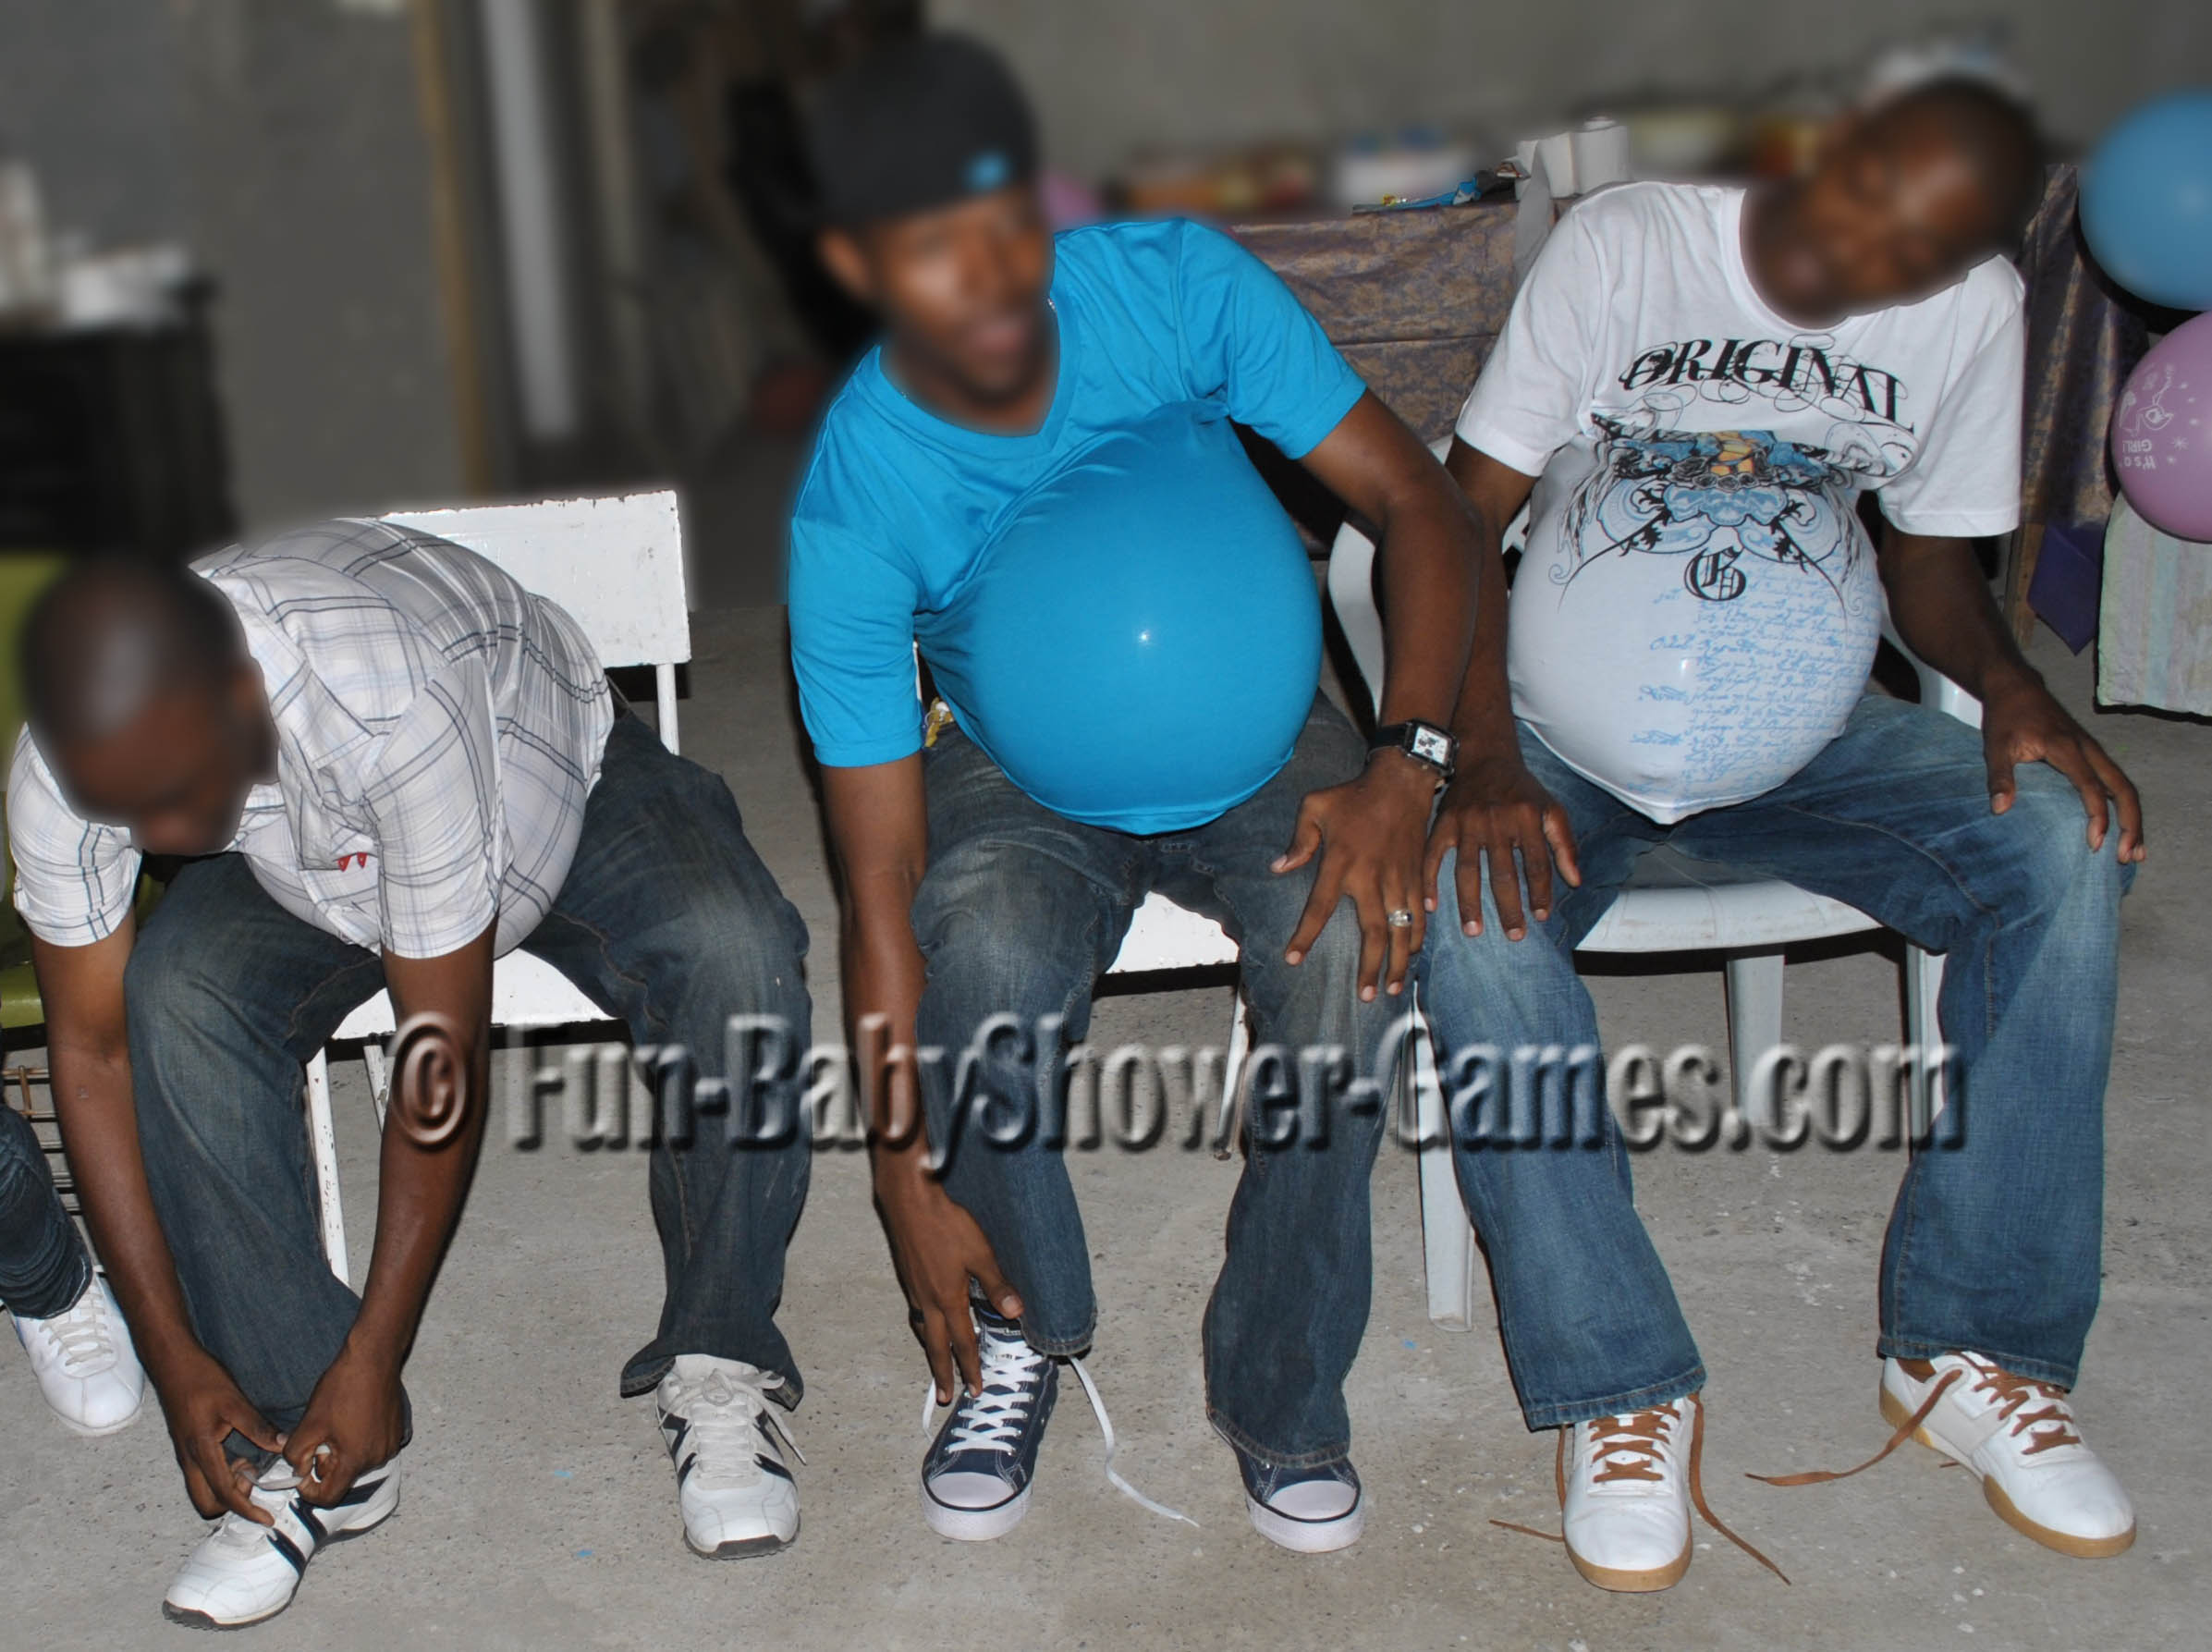 Baby shower games for men www pixshark com images galleries with a bite